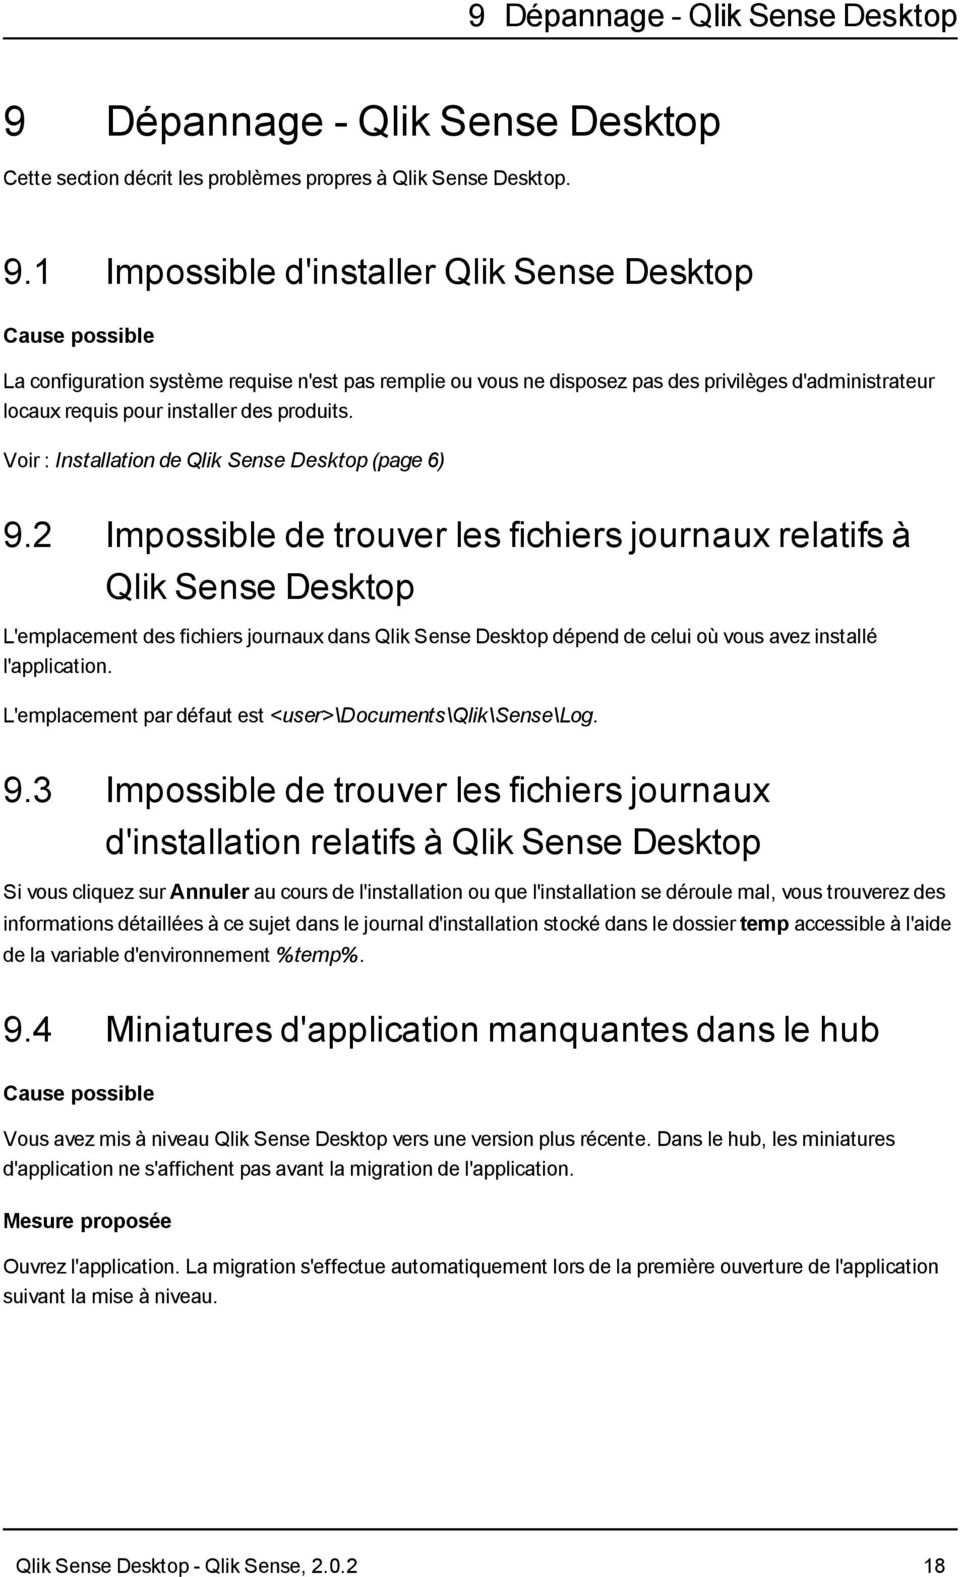 1 Impossible d'installer Qlik Sense Desktop Cause possible La configuration système requise n'est pas remplie ou vous ne disposez pas des privilèges d'administrateur locaux requis pour installer des